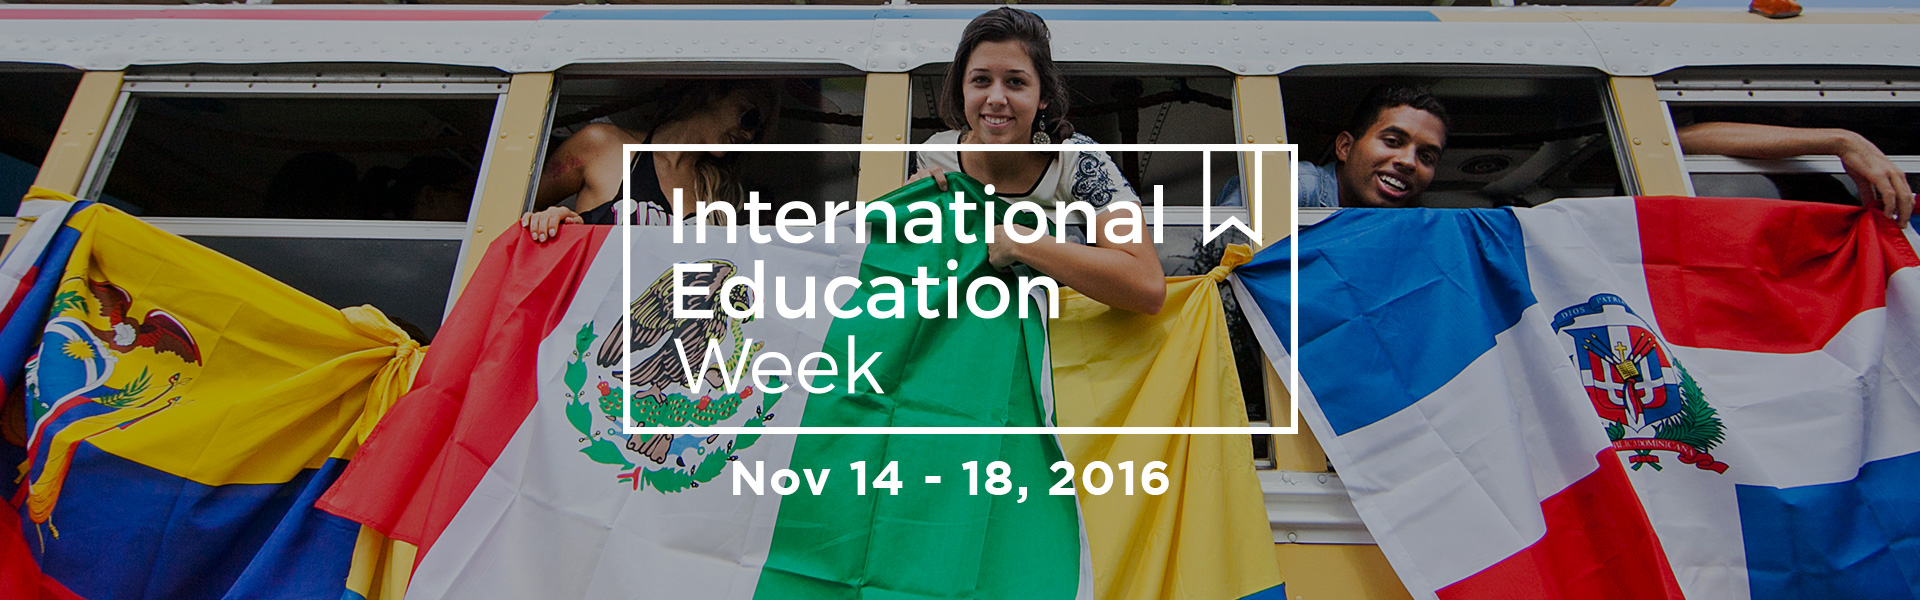 UCF_IEW-2016_Web-Banner_1920x600_06